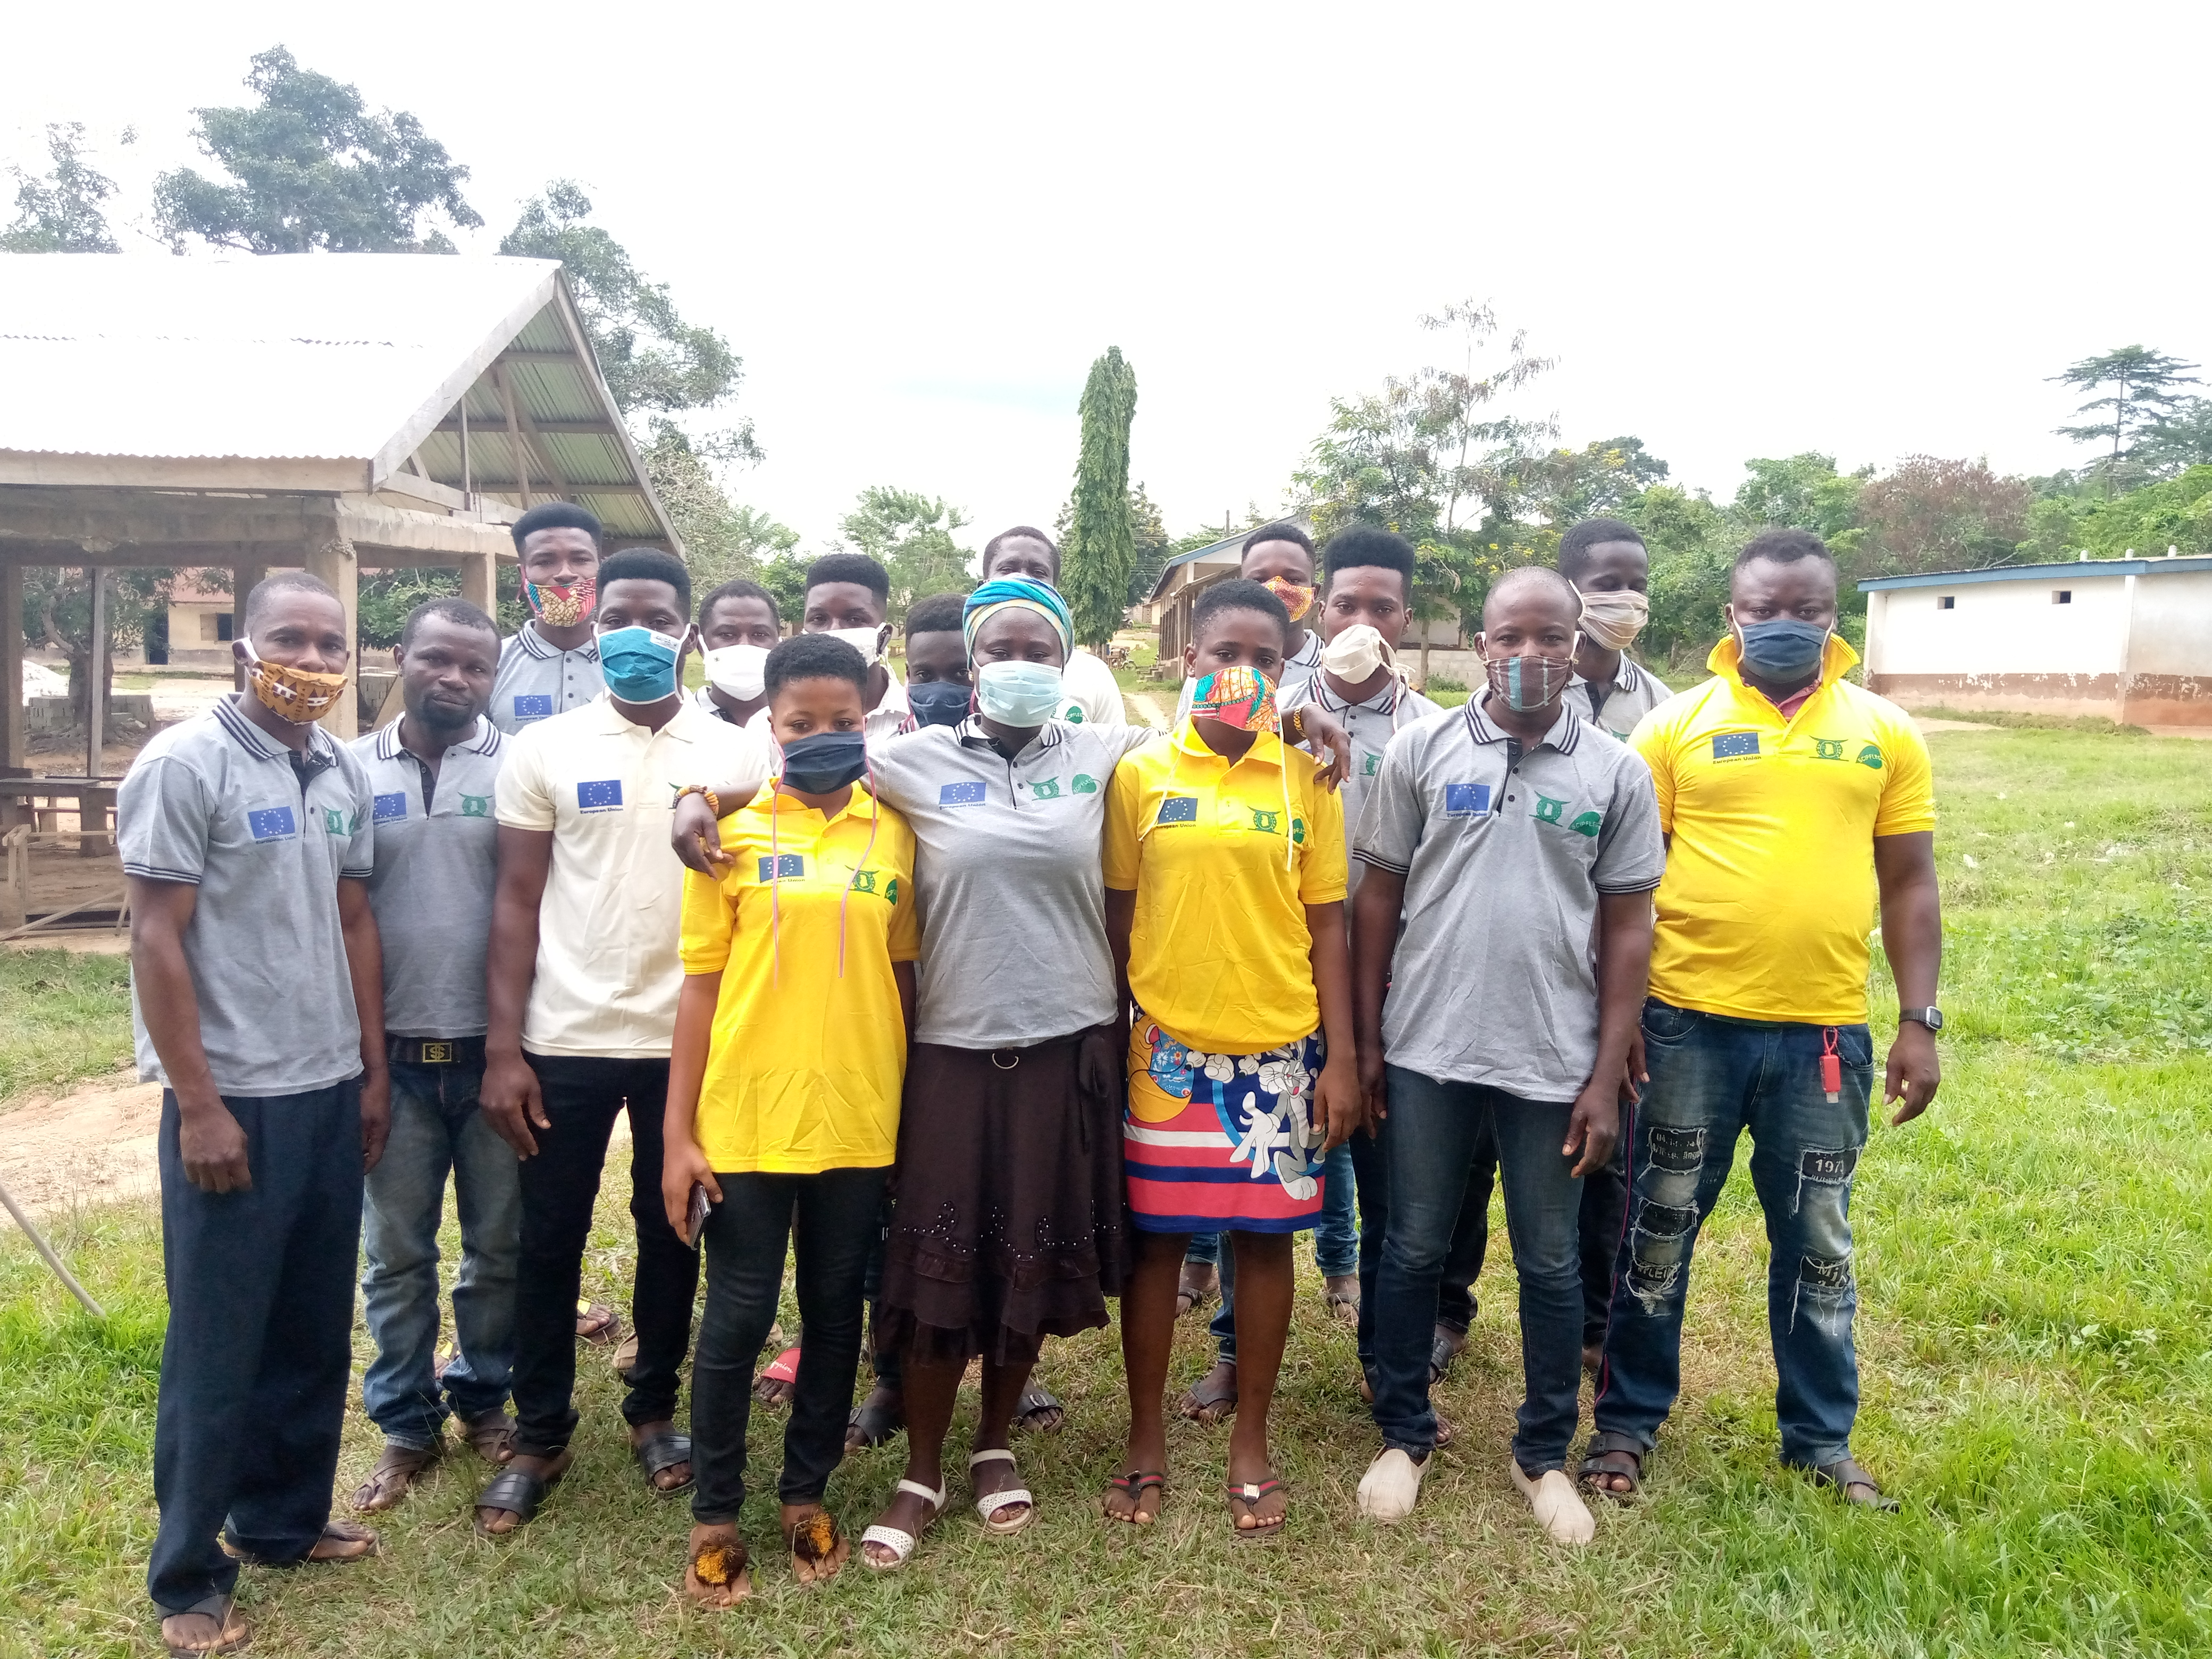 community_group_standing